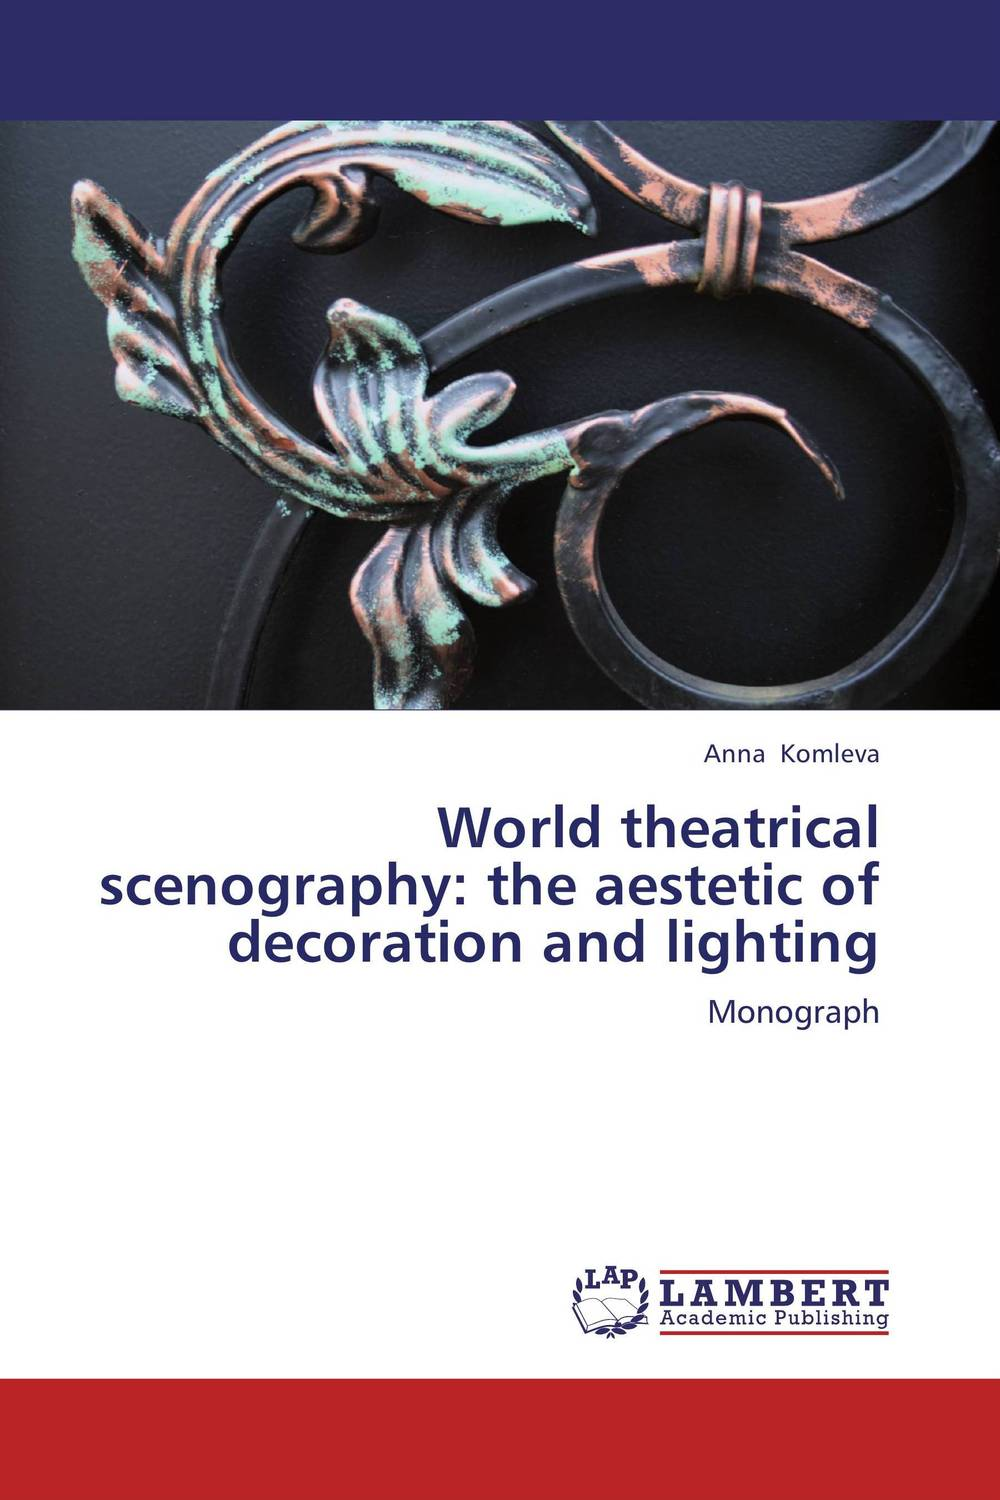 World Theatrical Scenography: The Aestetic of Decoration and Lighting umesh singh sushil kumar and rajib deb monograph on bovine leptin gene